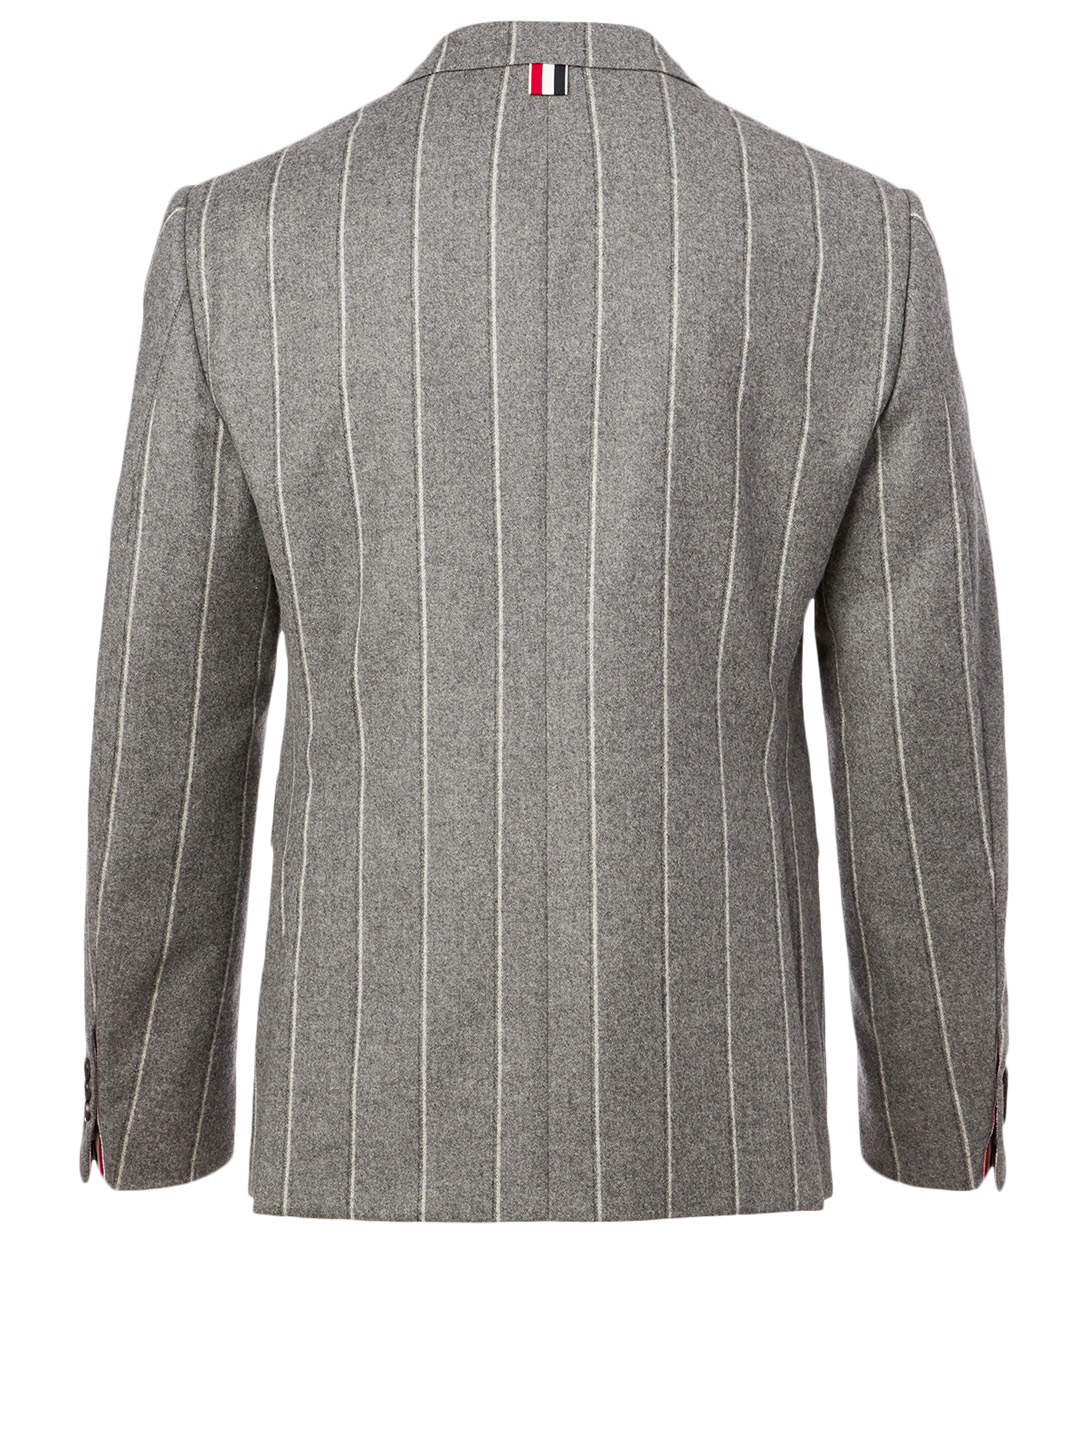 THOM BROWNE Wool Jacket In Stripe Print Men's Grey